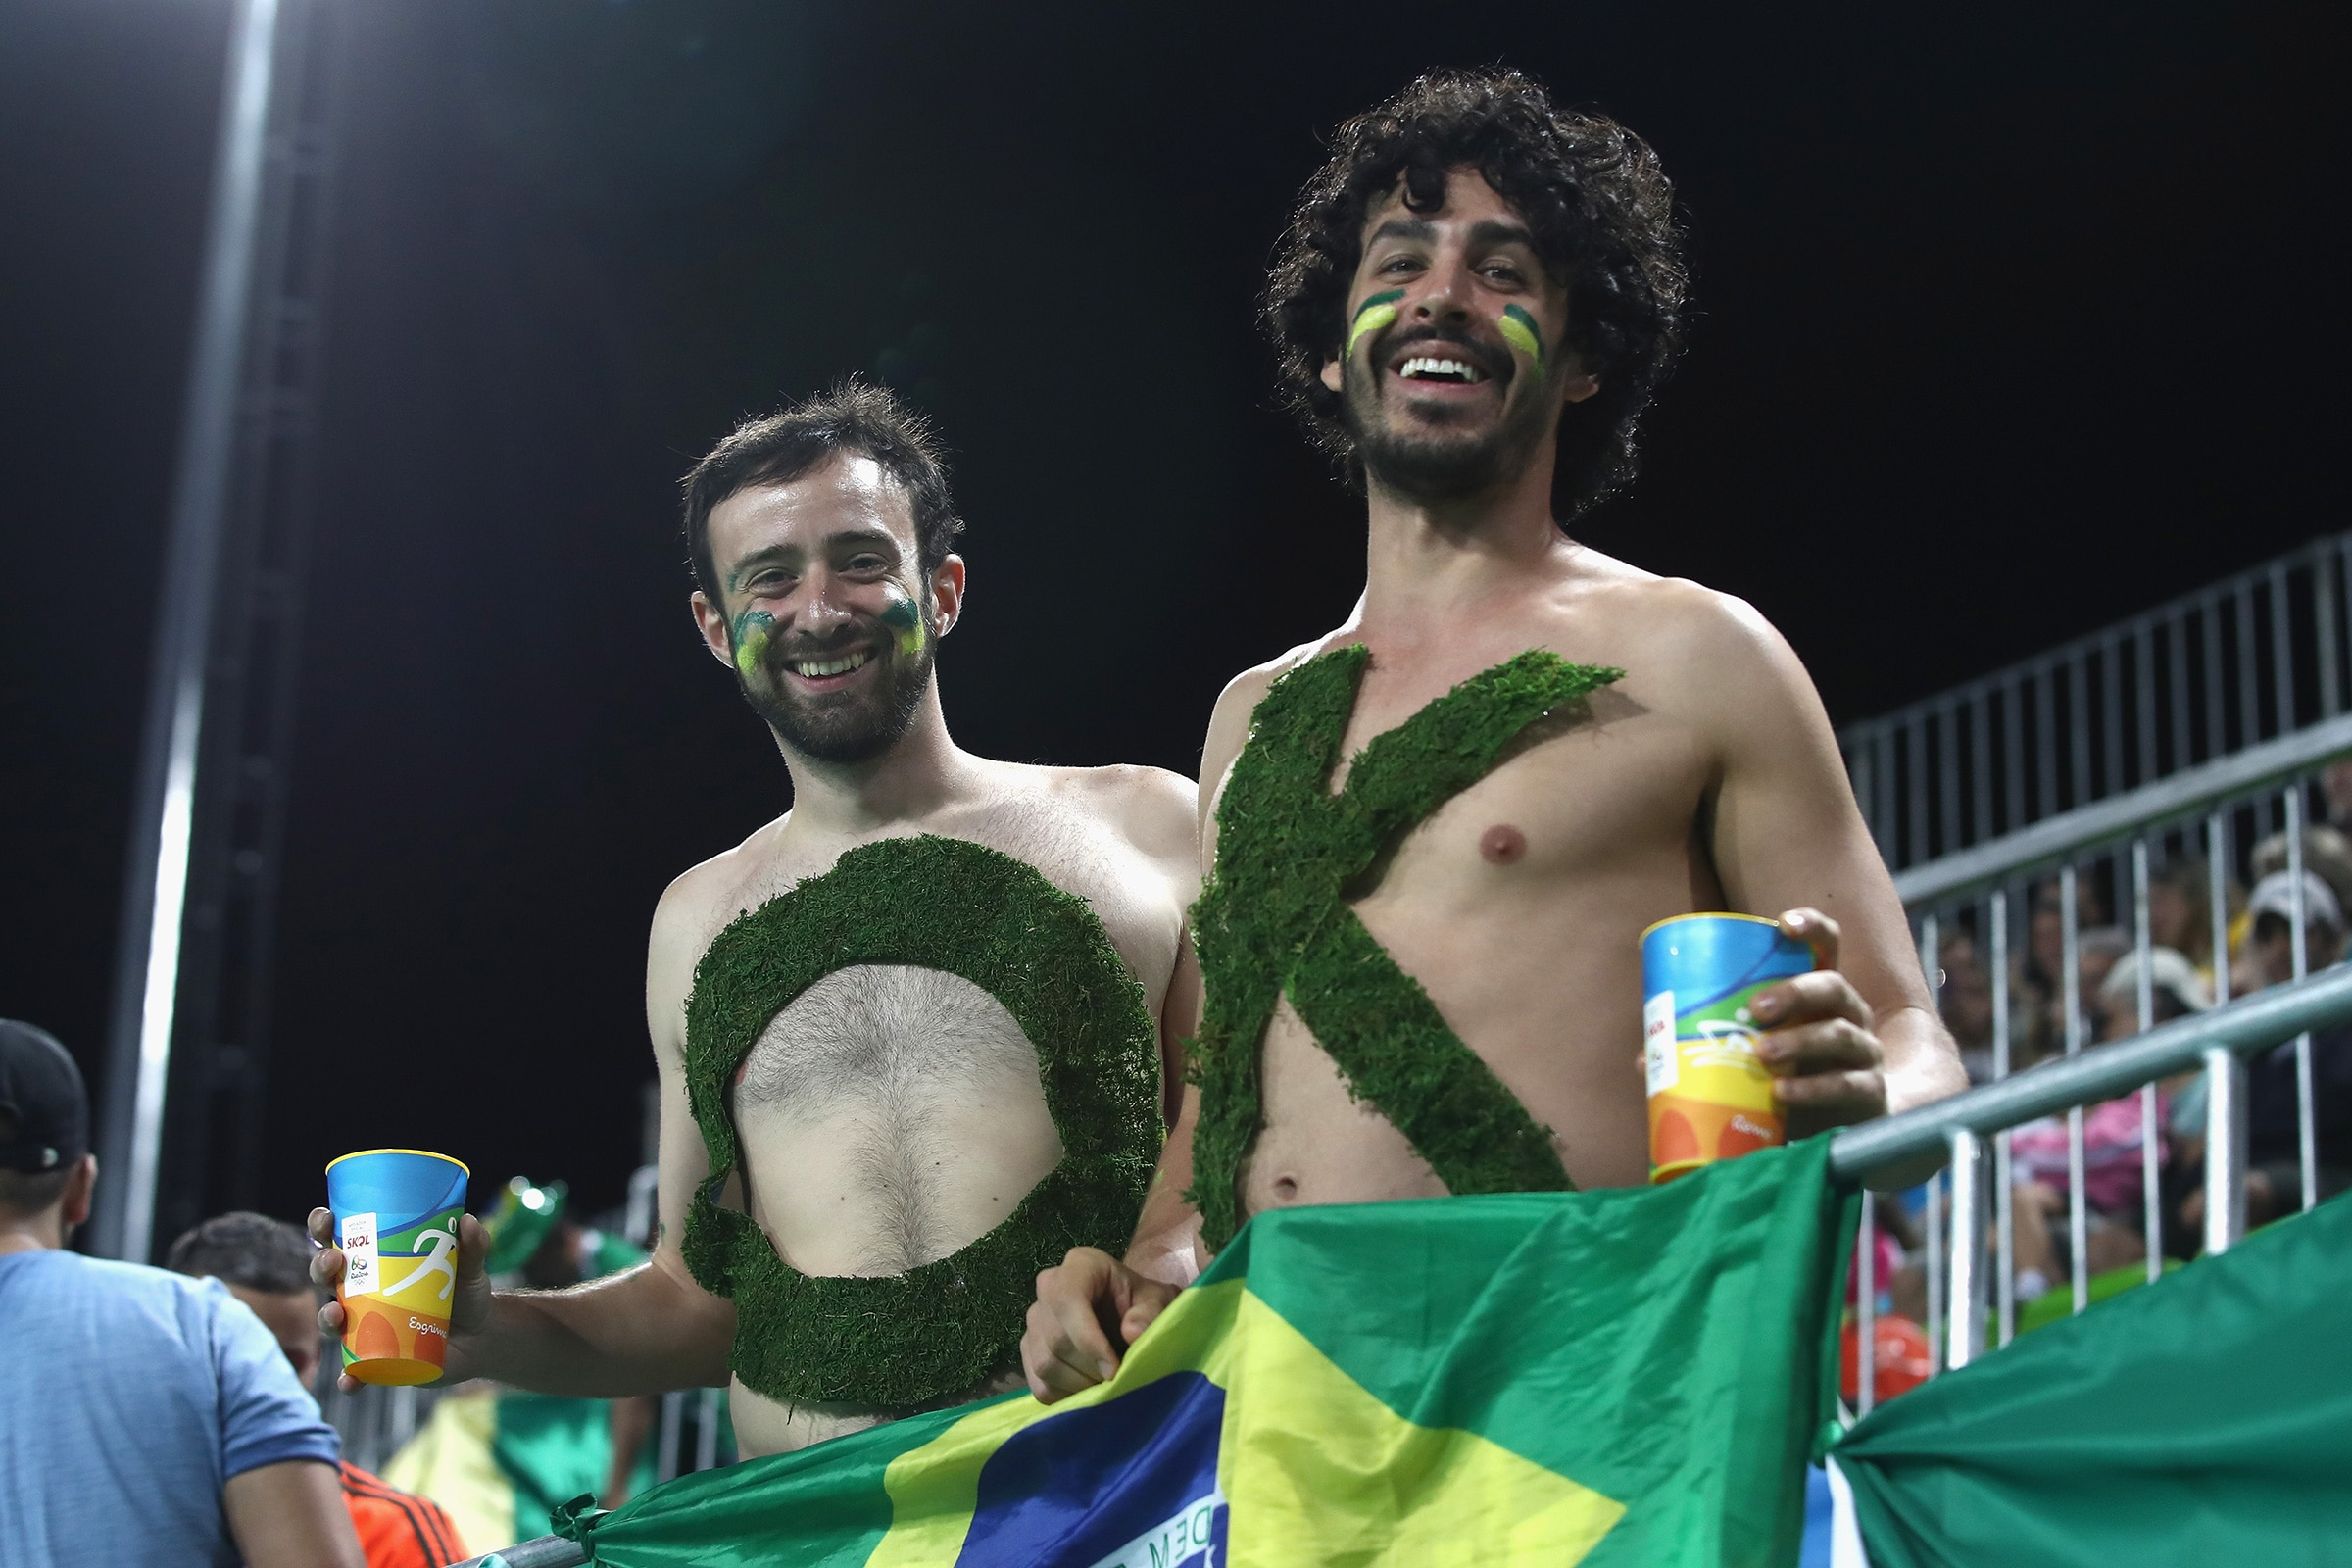 Fans at the Rio 2016 Olympic Games